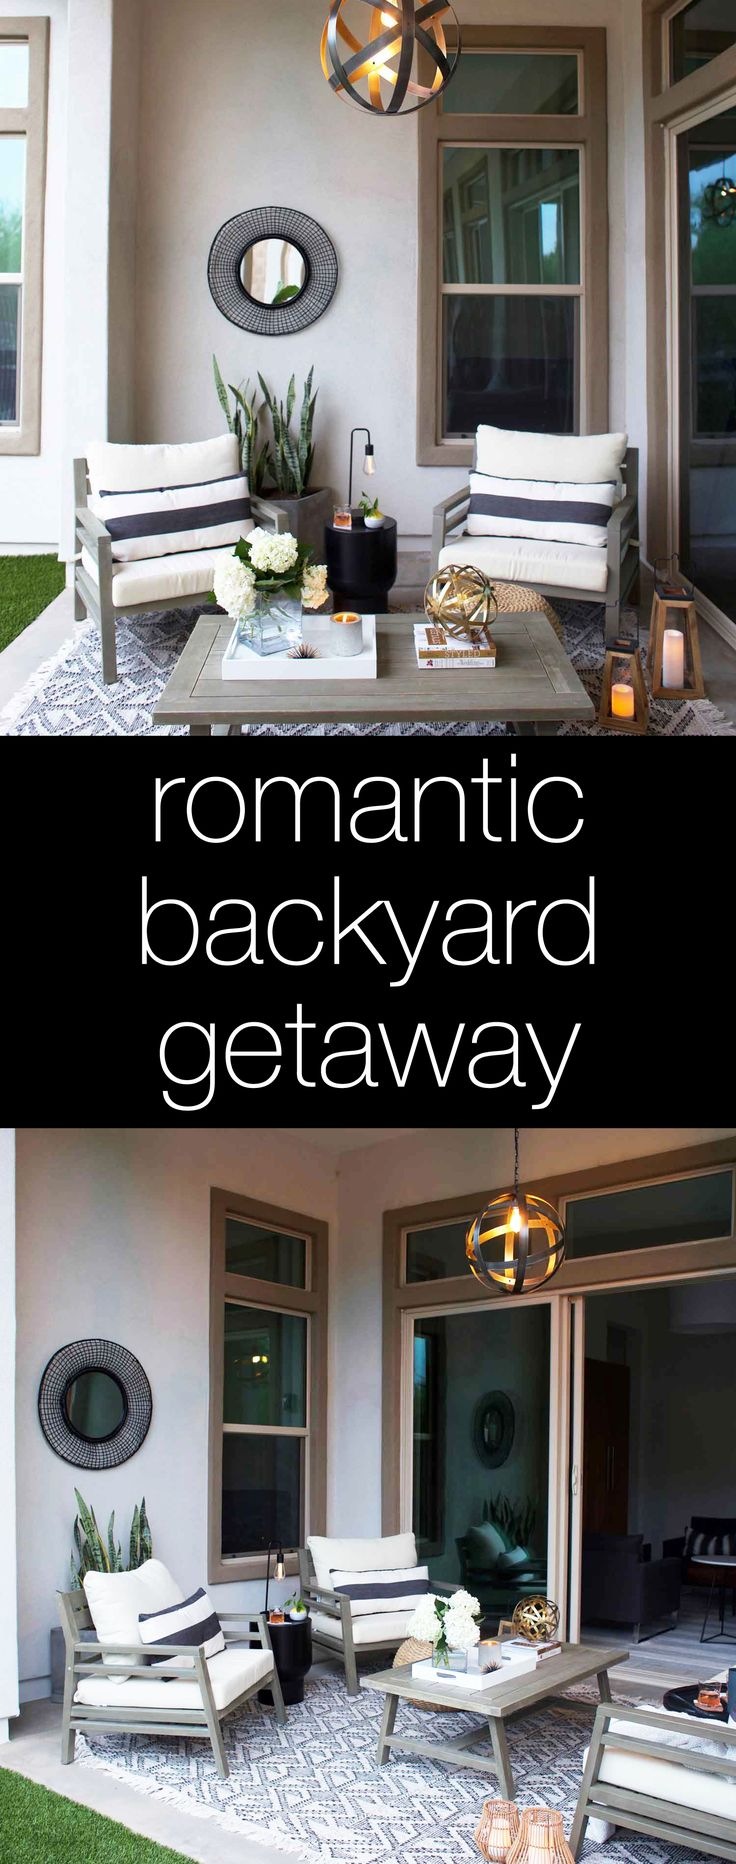 How to create a romantic backyard getaway and some tips and tricks for decorating outdoors.